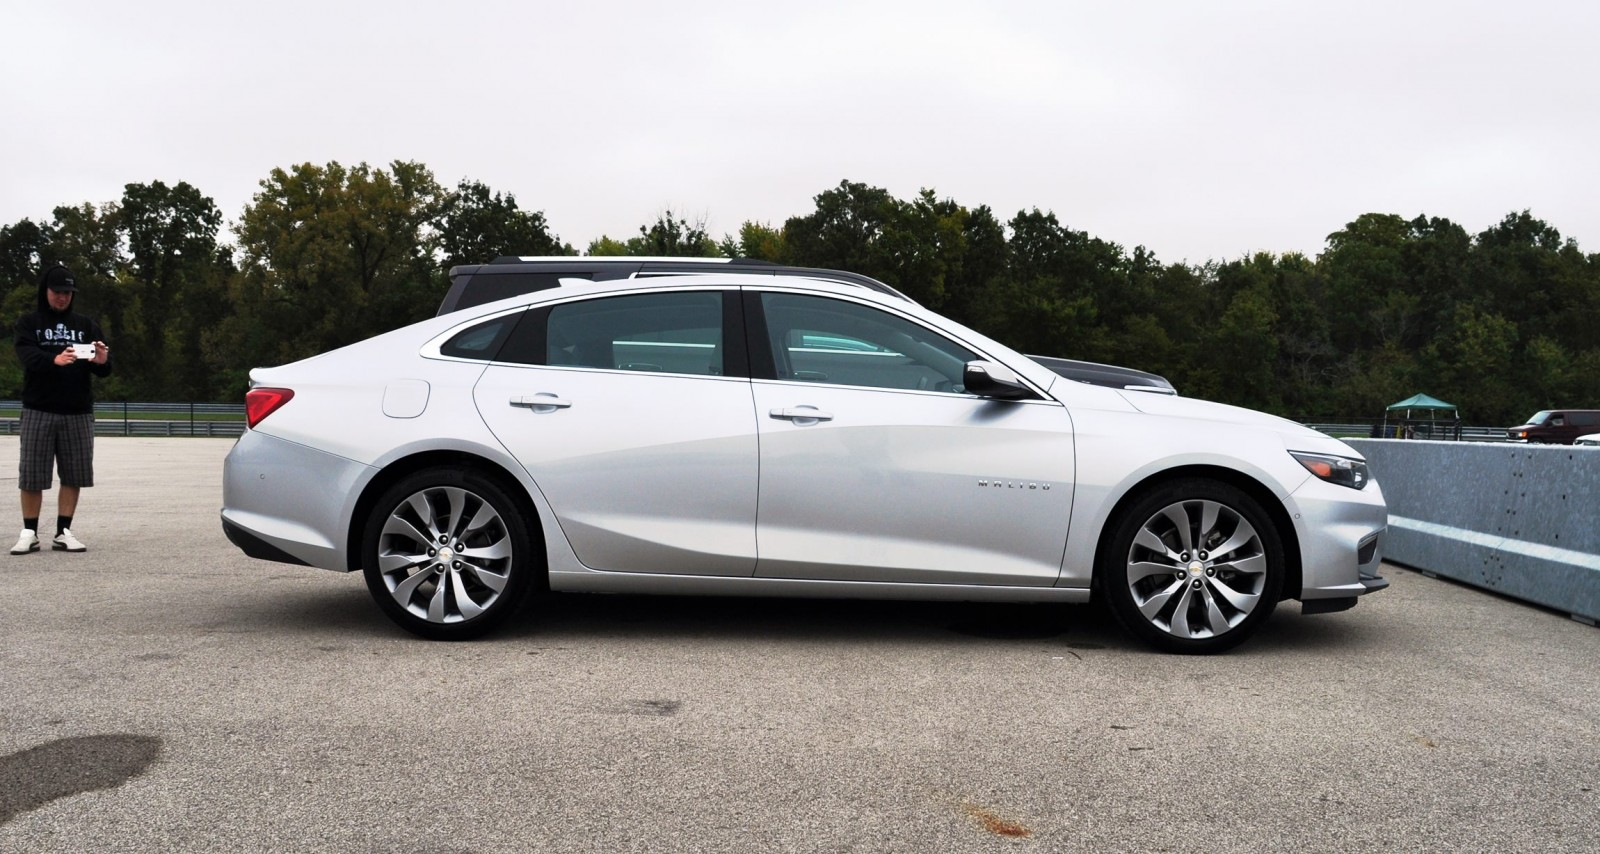 Home 2016 Chevrolet Malibu 2 0t Pre Production First Look Inside And Out Premier 7